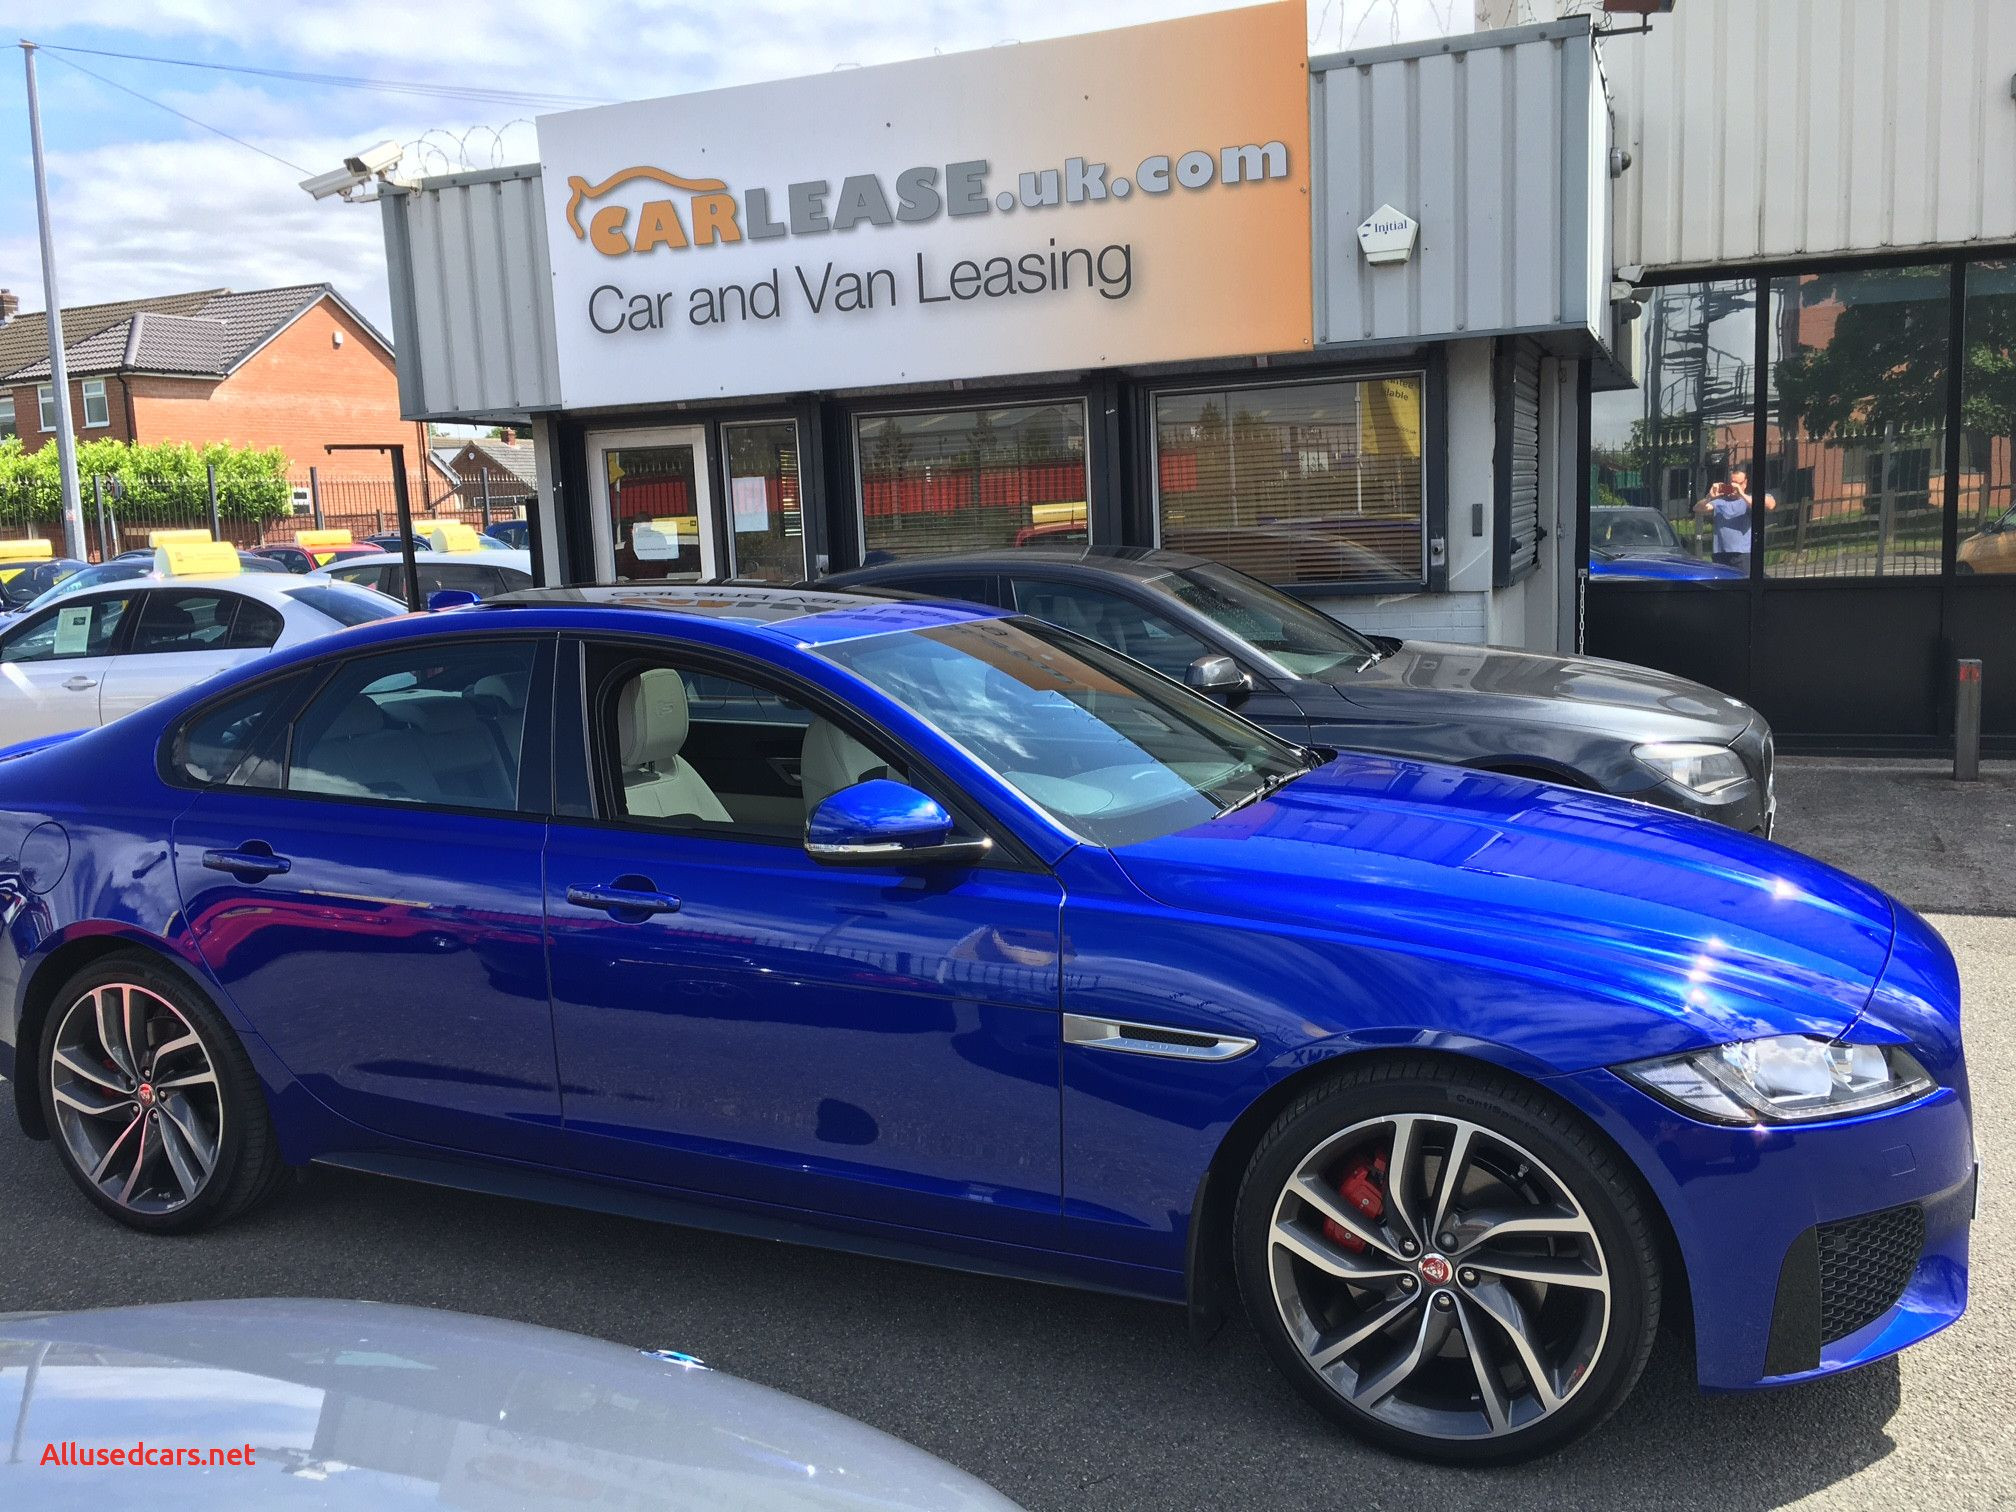 Used Cars for Sale or Lease Beautiful Beautiful Luxury Cars In 2020